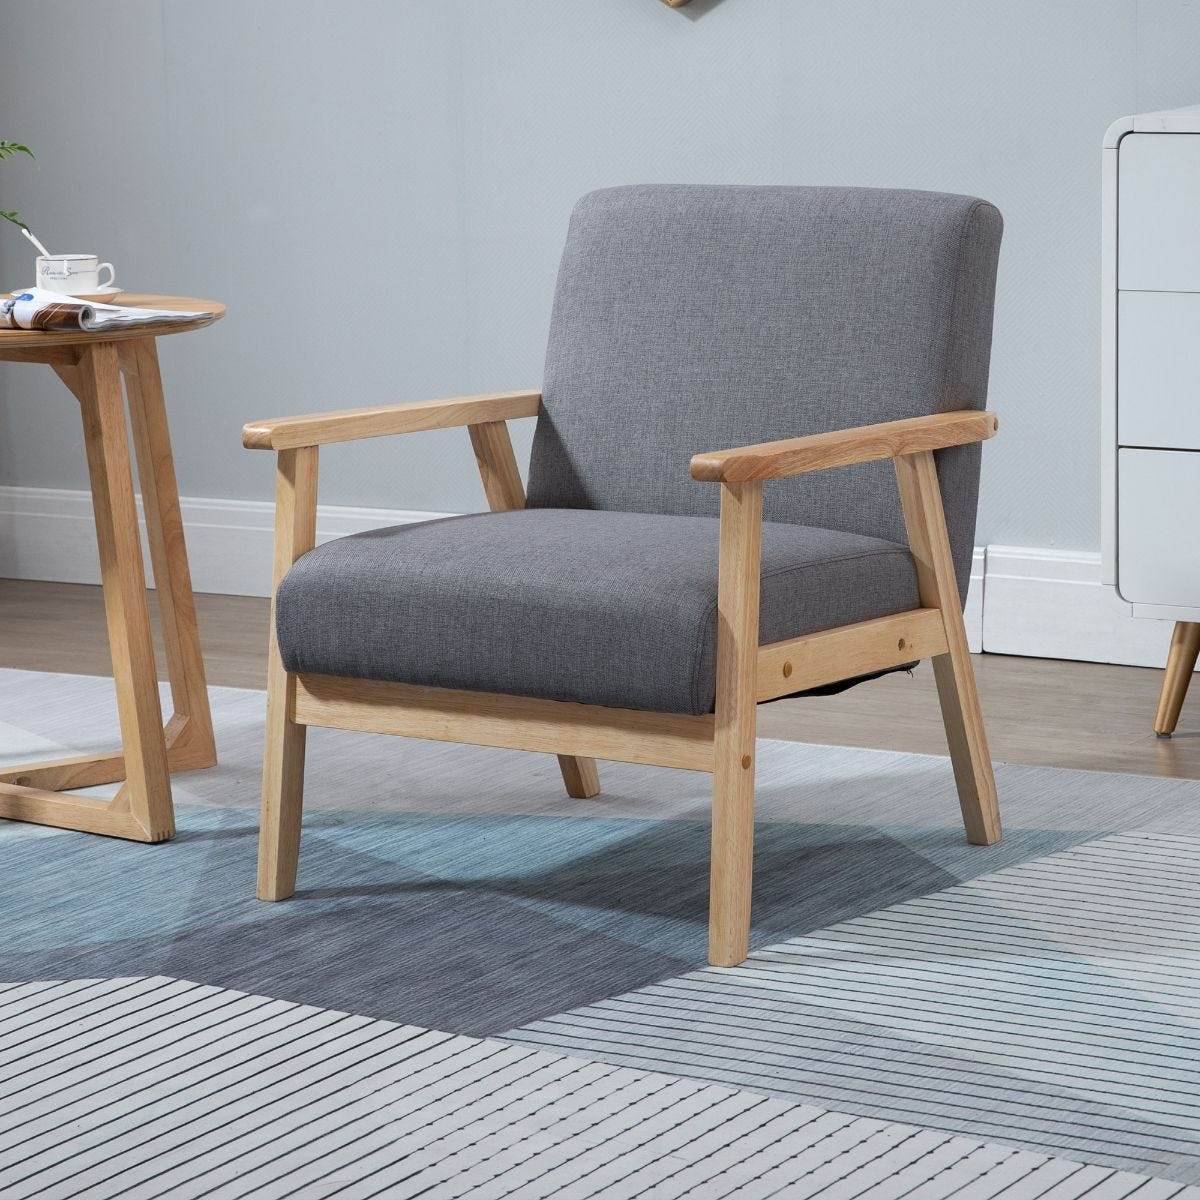 Minimalistic Armchair Wood Frame With Linen Cushions Wide Seat Grey